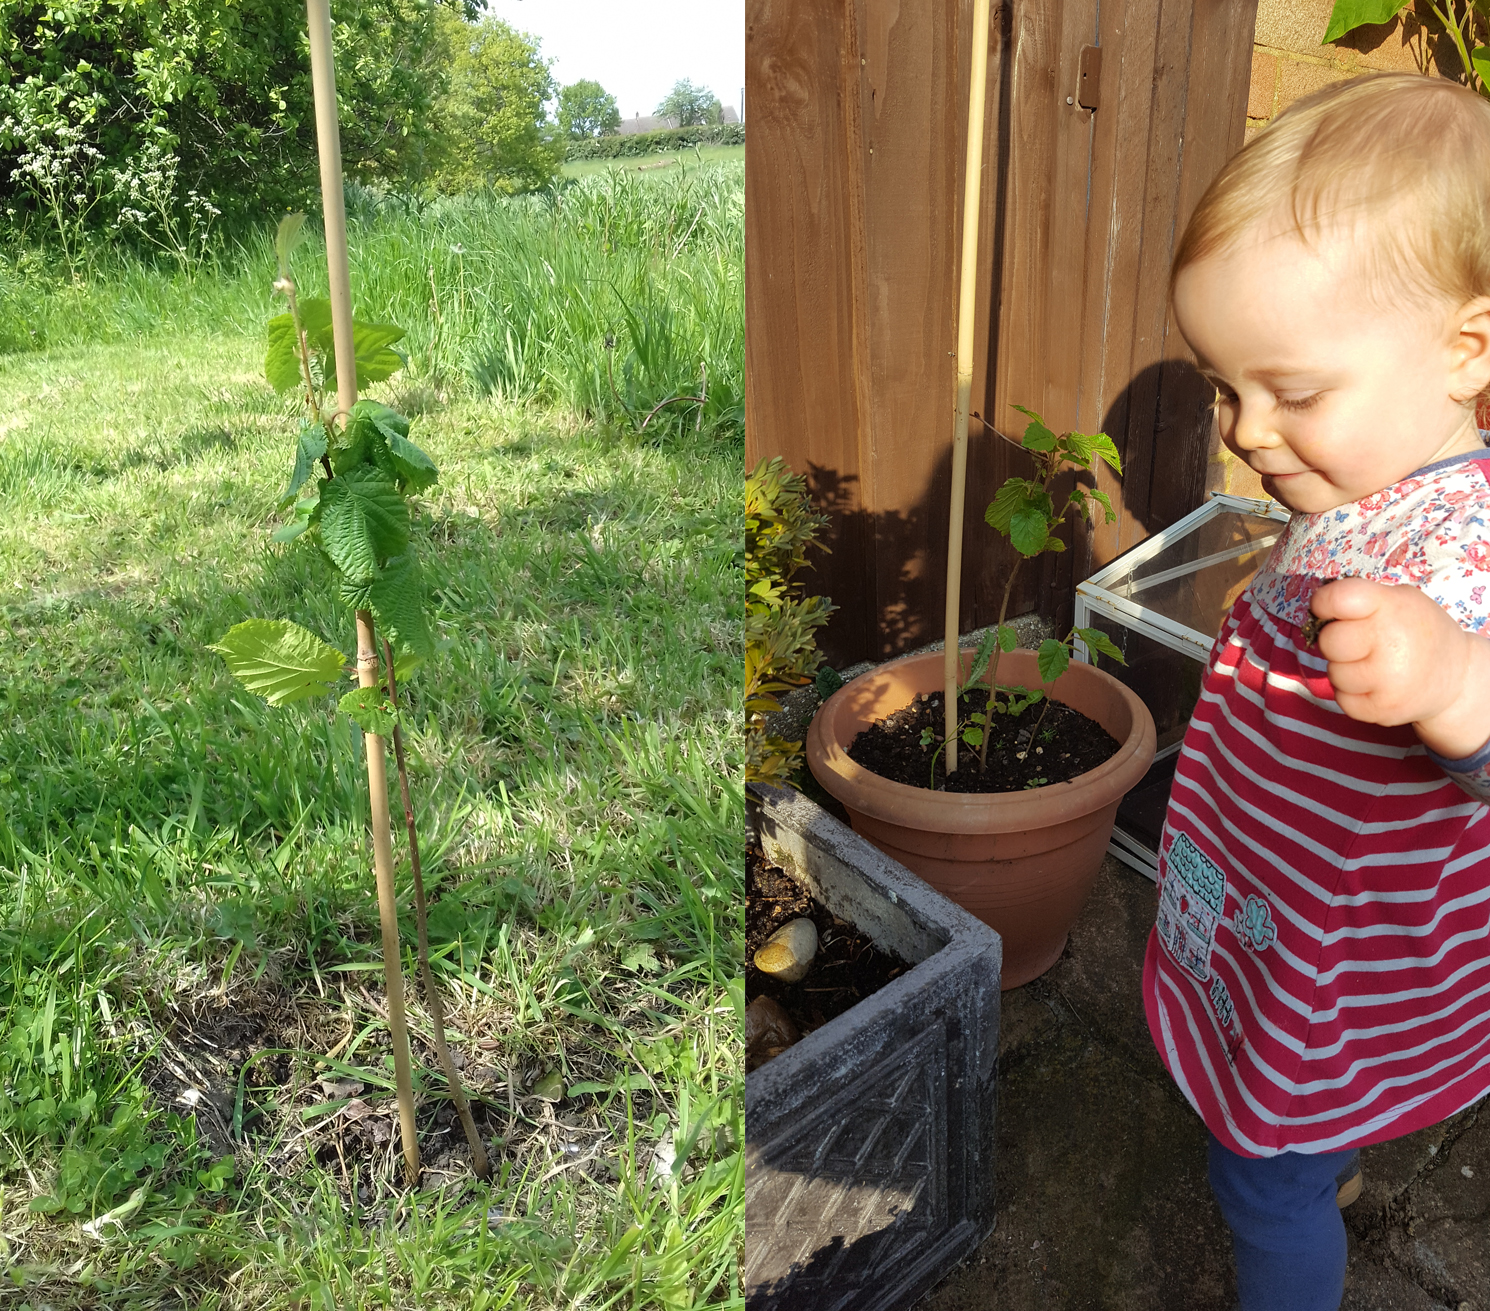 A sapling in the ground, and a little girl with a sapling in a pot